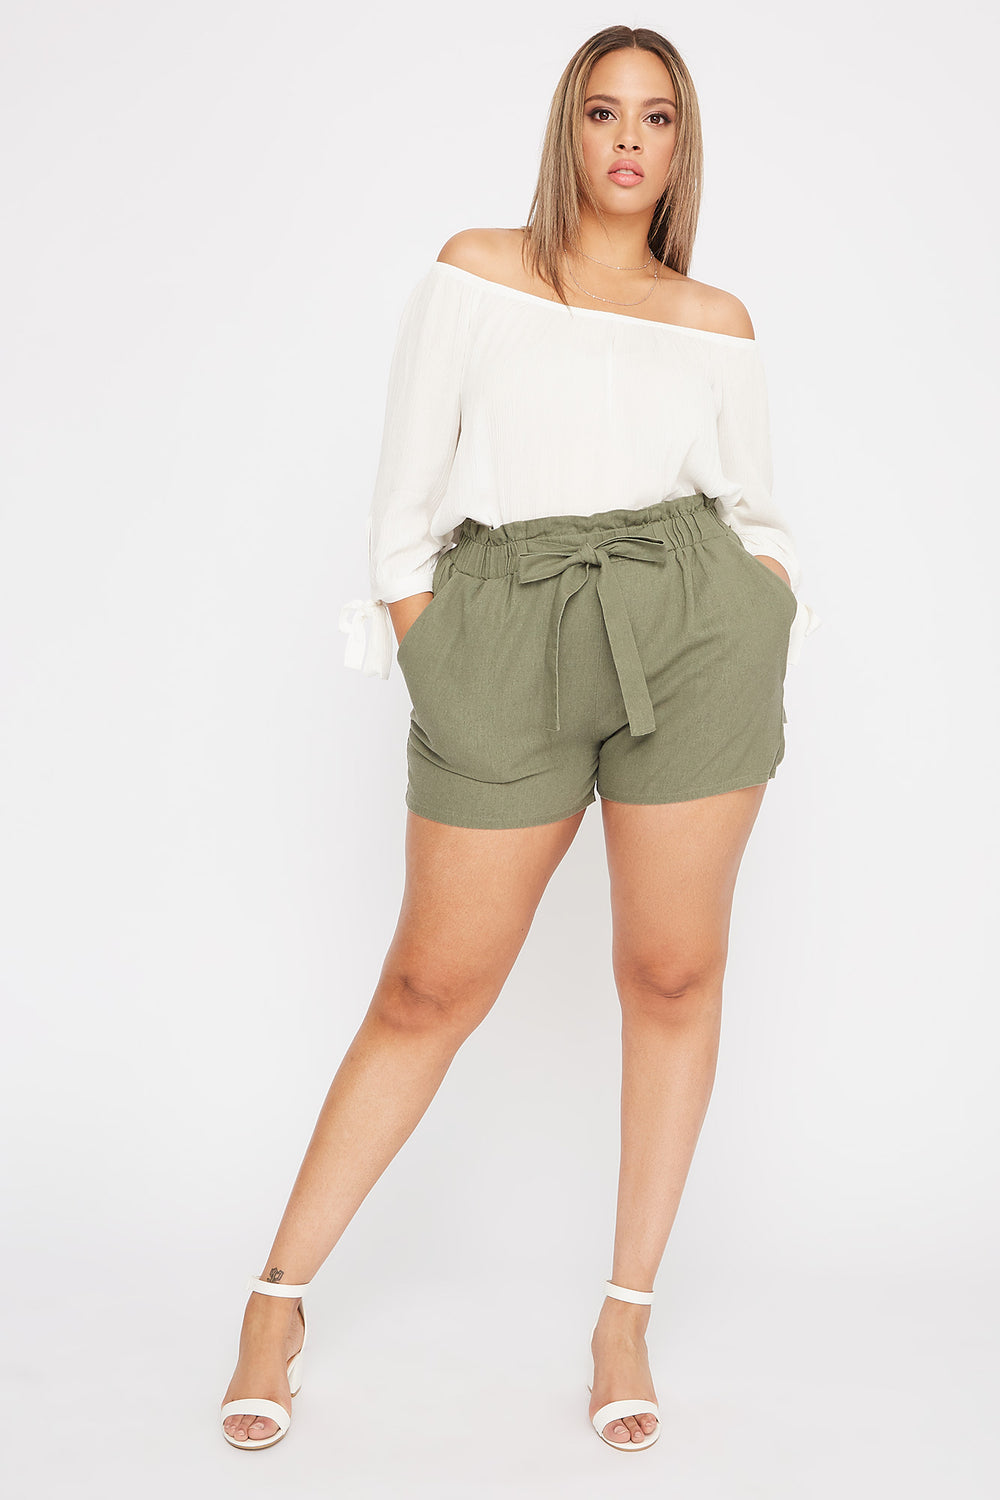 Plus Size Linen High-Rise Tie Short Green